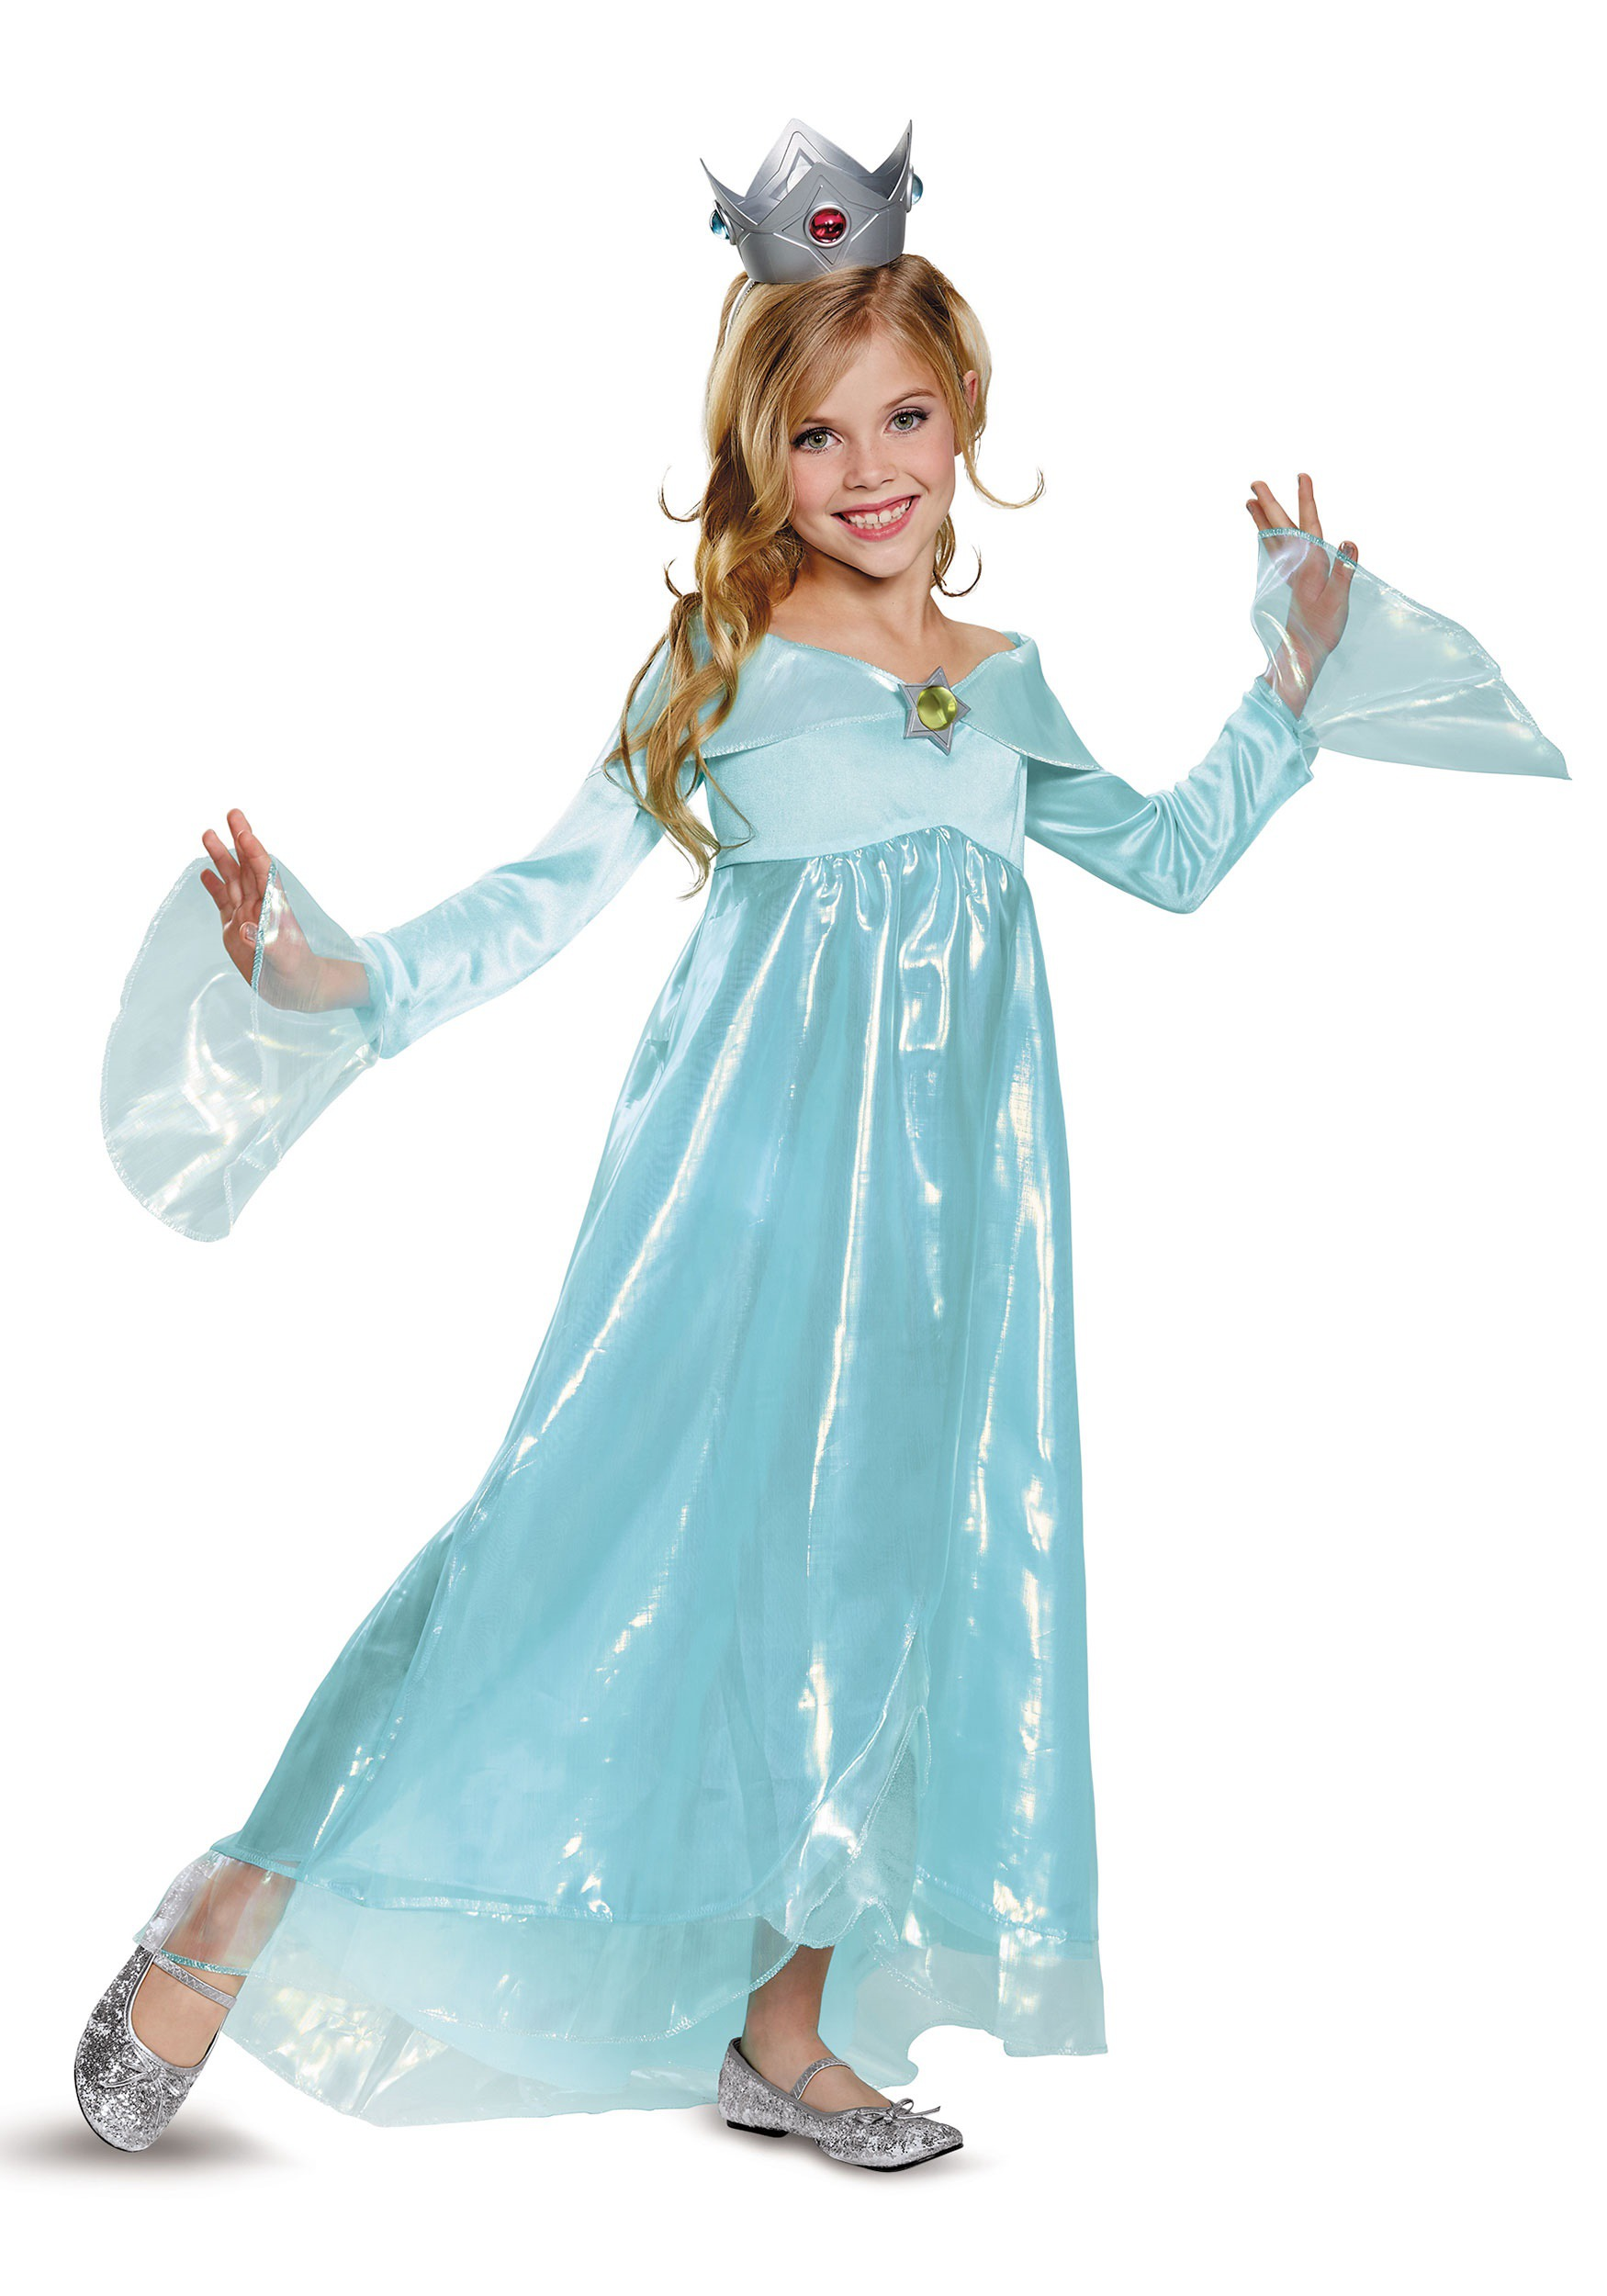 Super Mario Rosalina Deluxe Costume For Girls